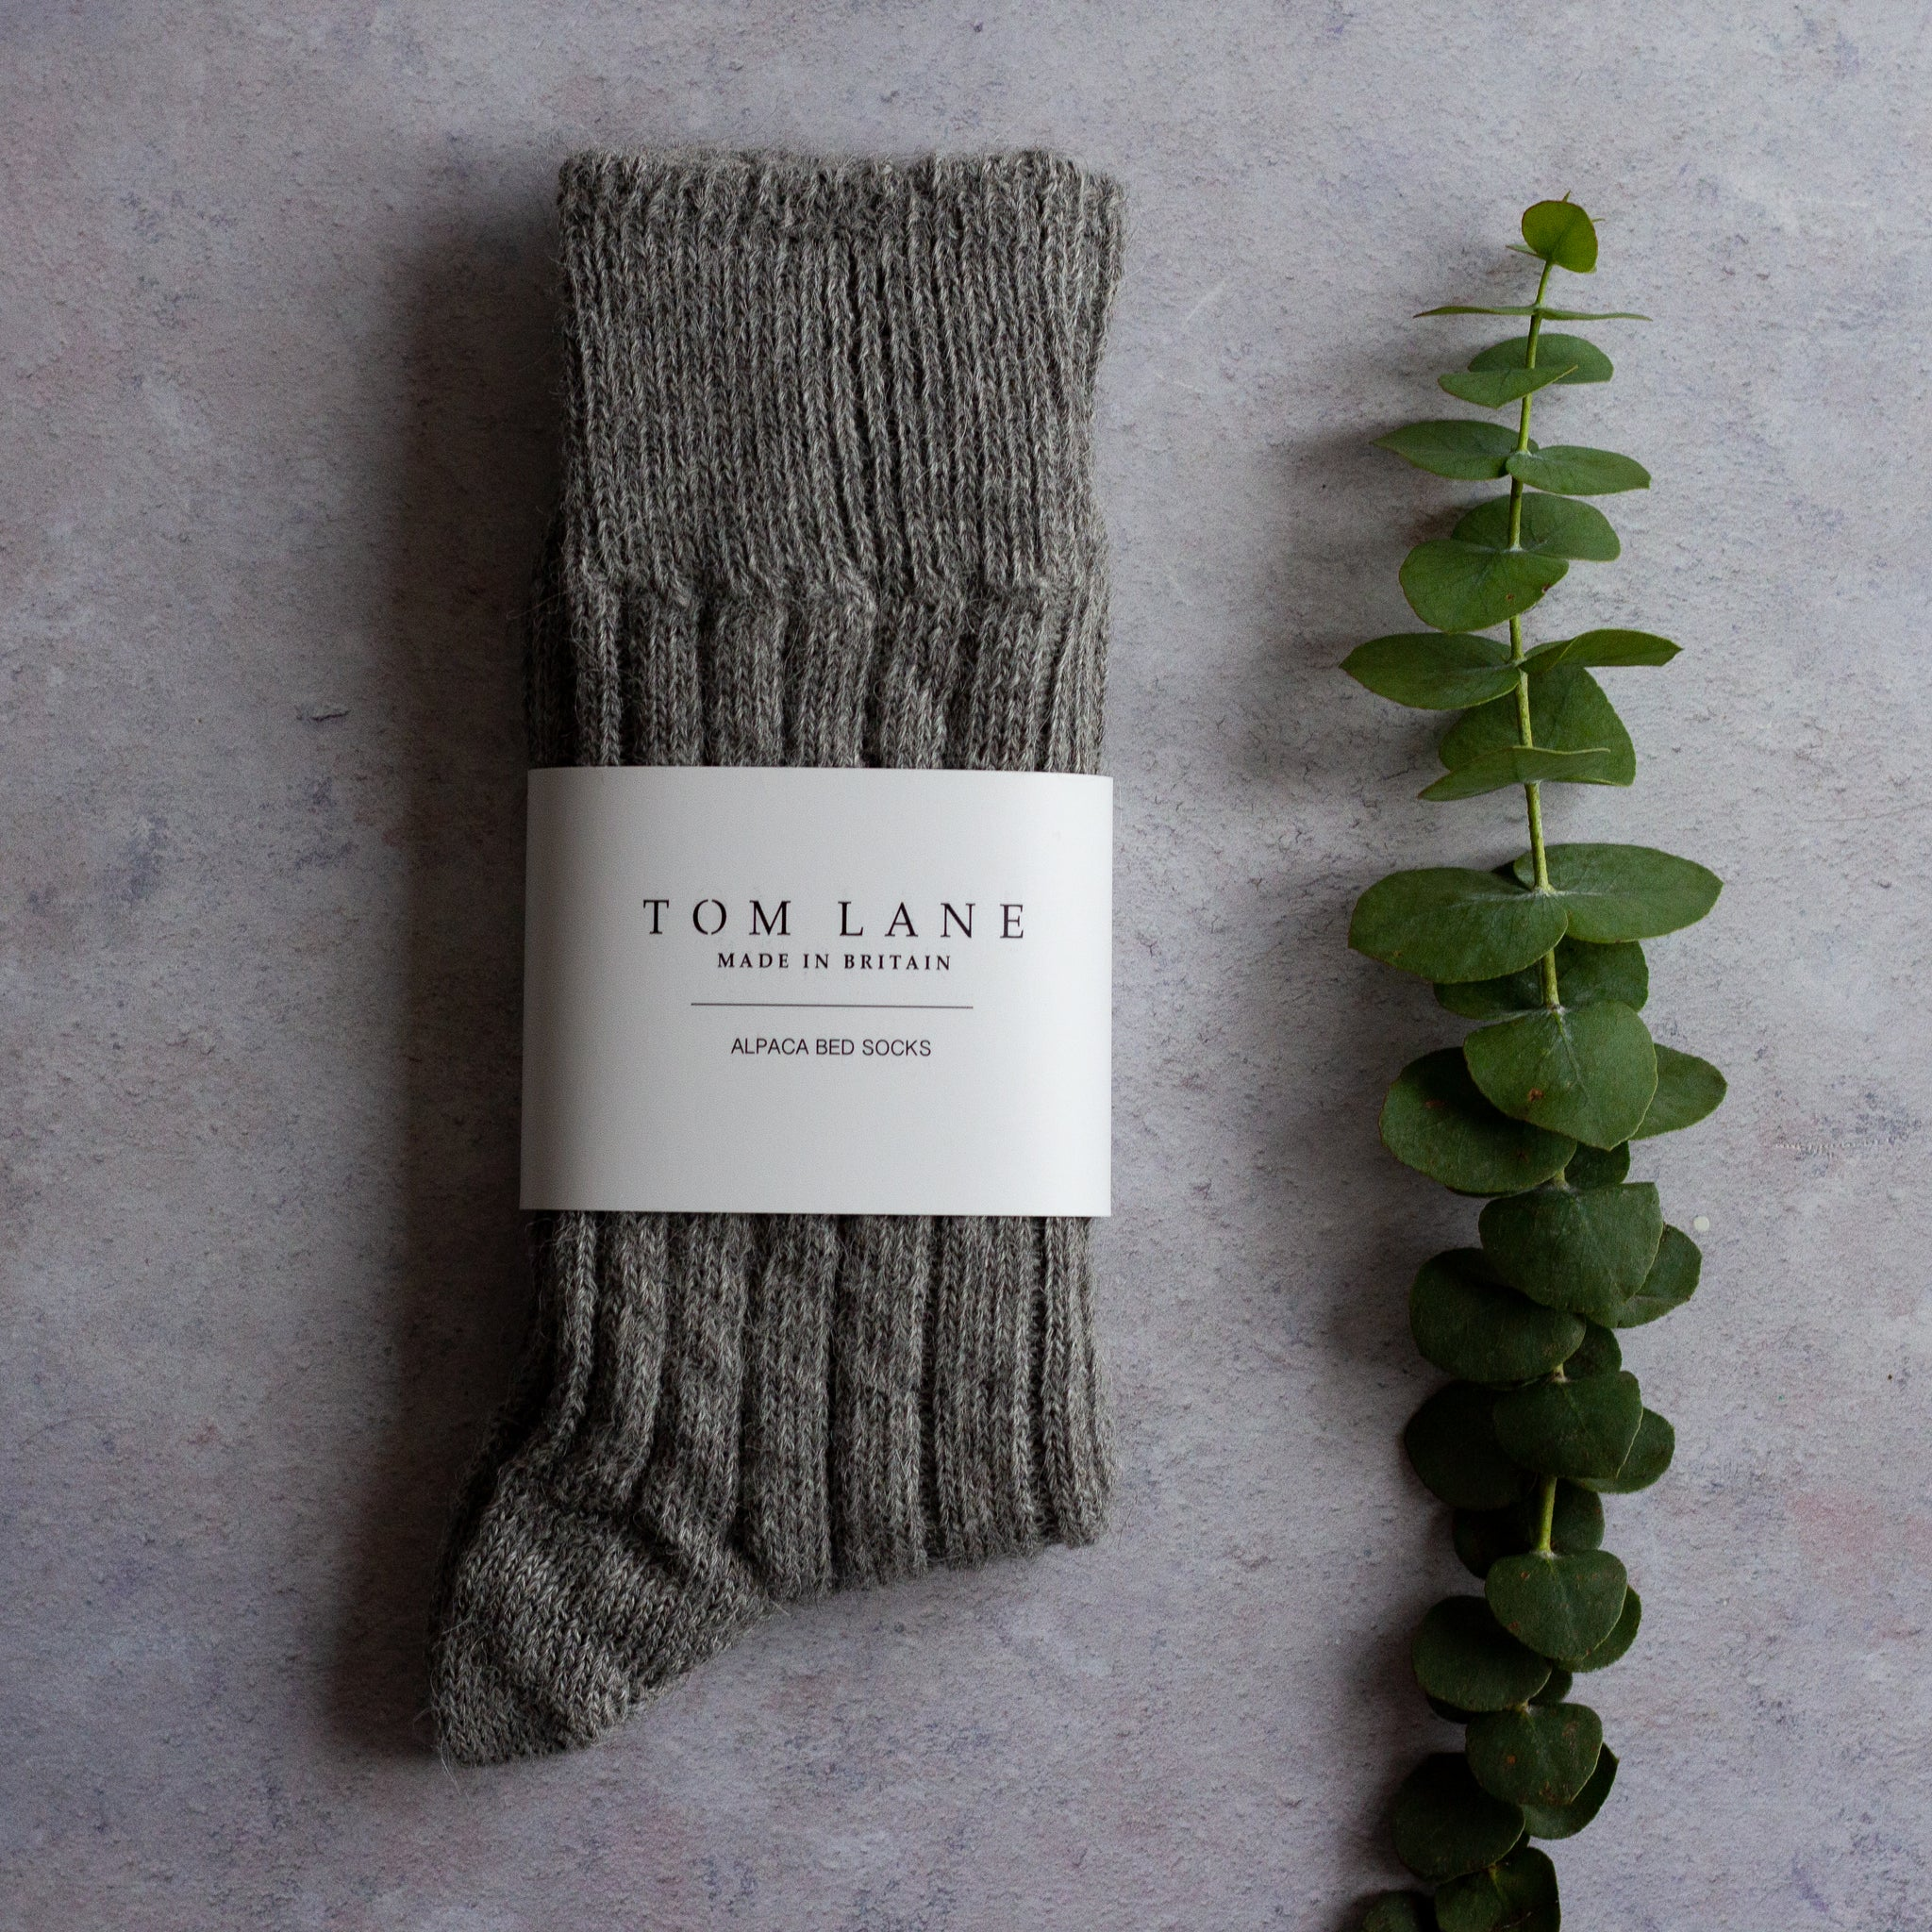 Tom Lane Alpaca Bed Socks